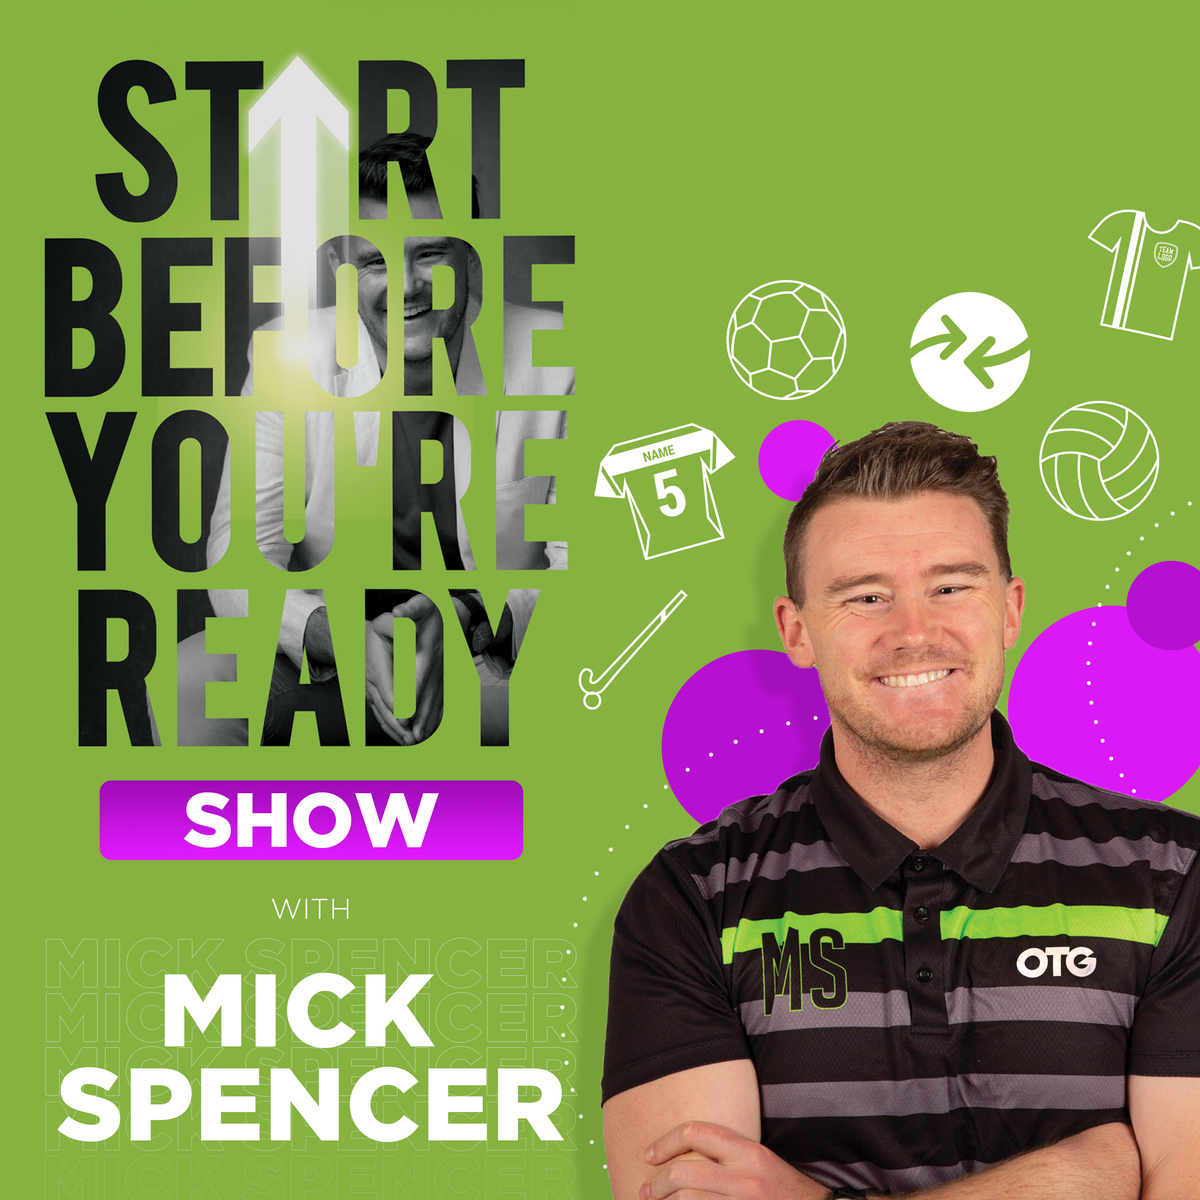 Mick Spencer Start Before You're Ready Show Podcast OTG Custom Apparel